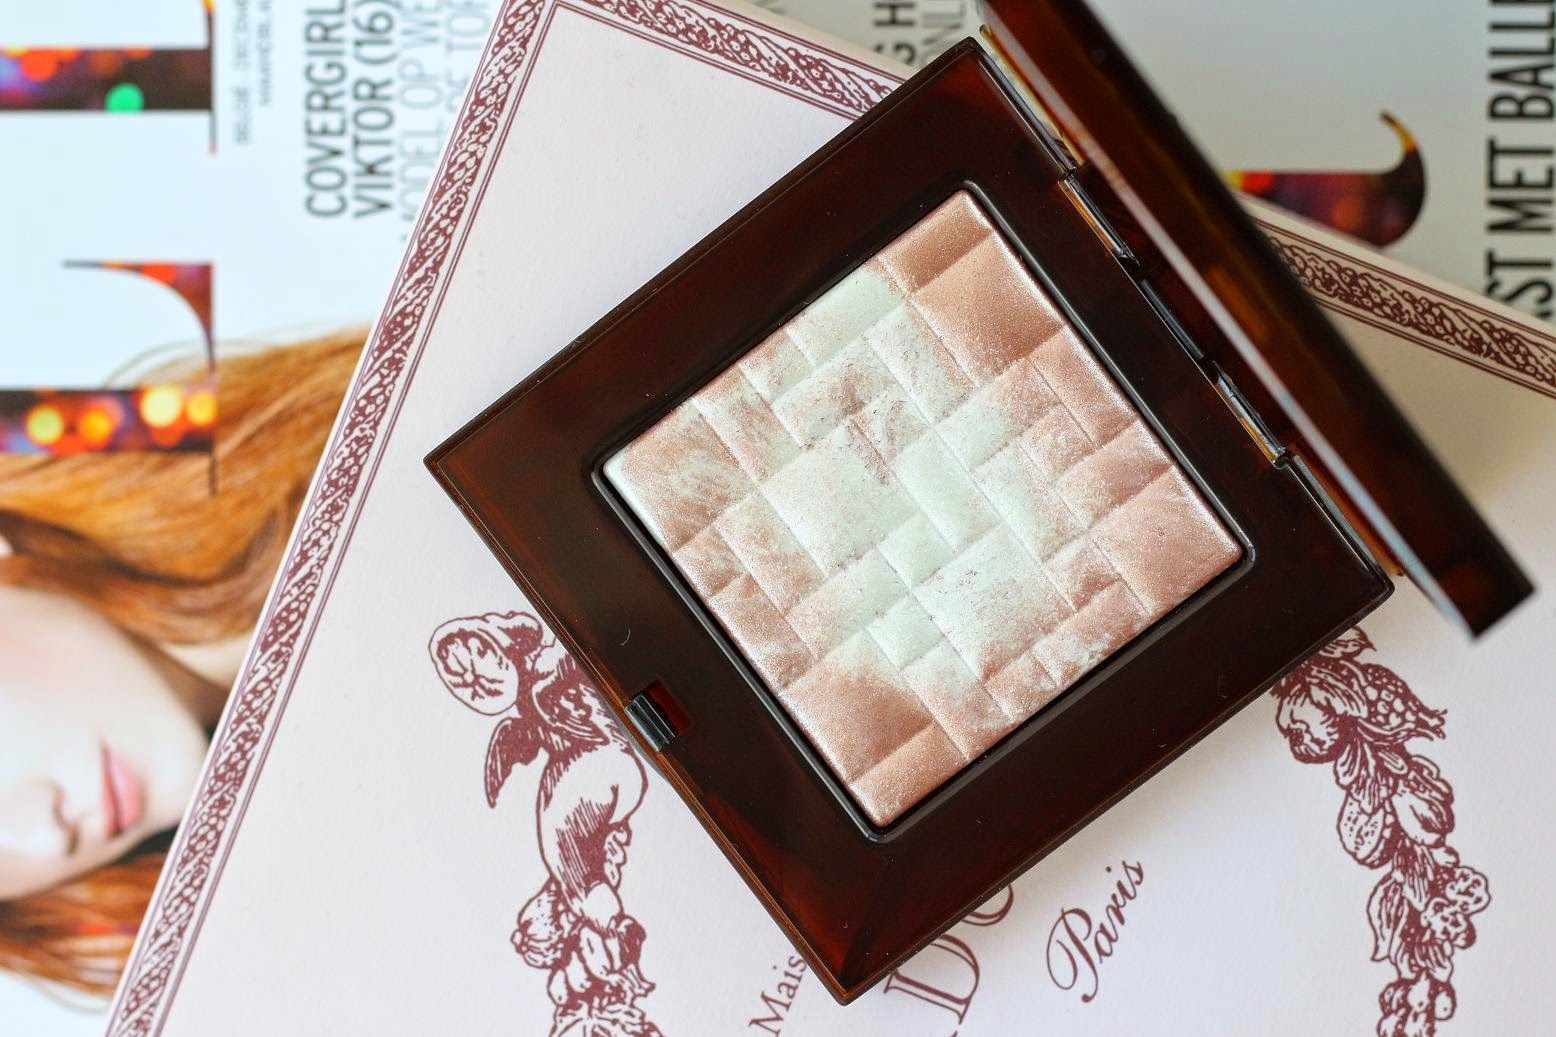 Bobbi Brown Highlight Powder Pink Glow